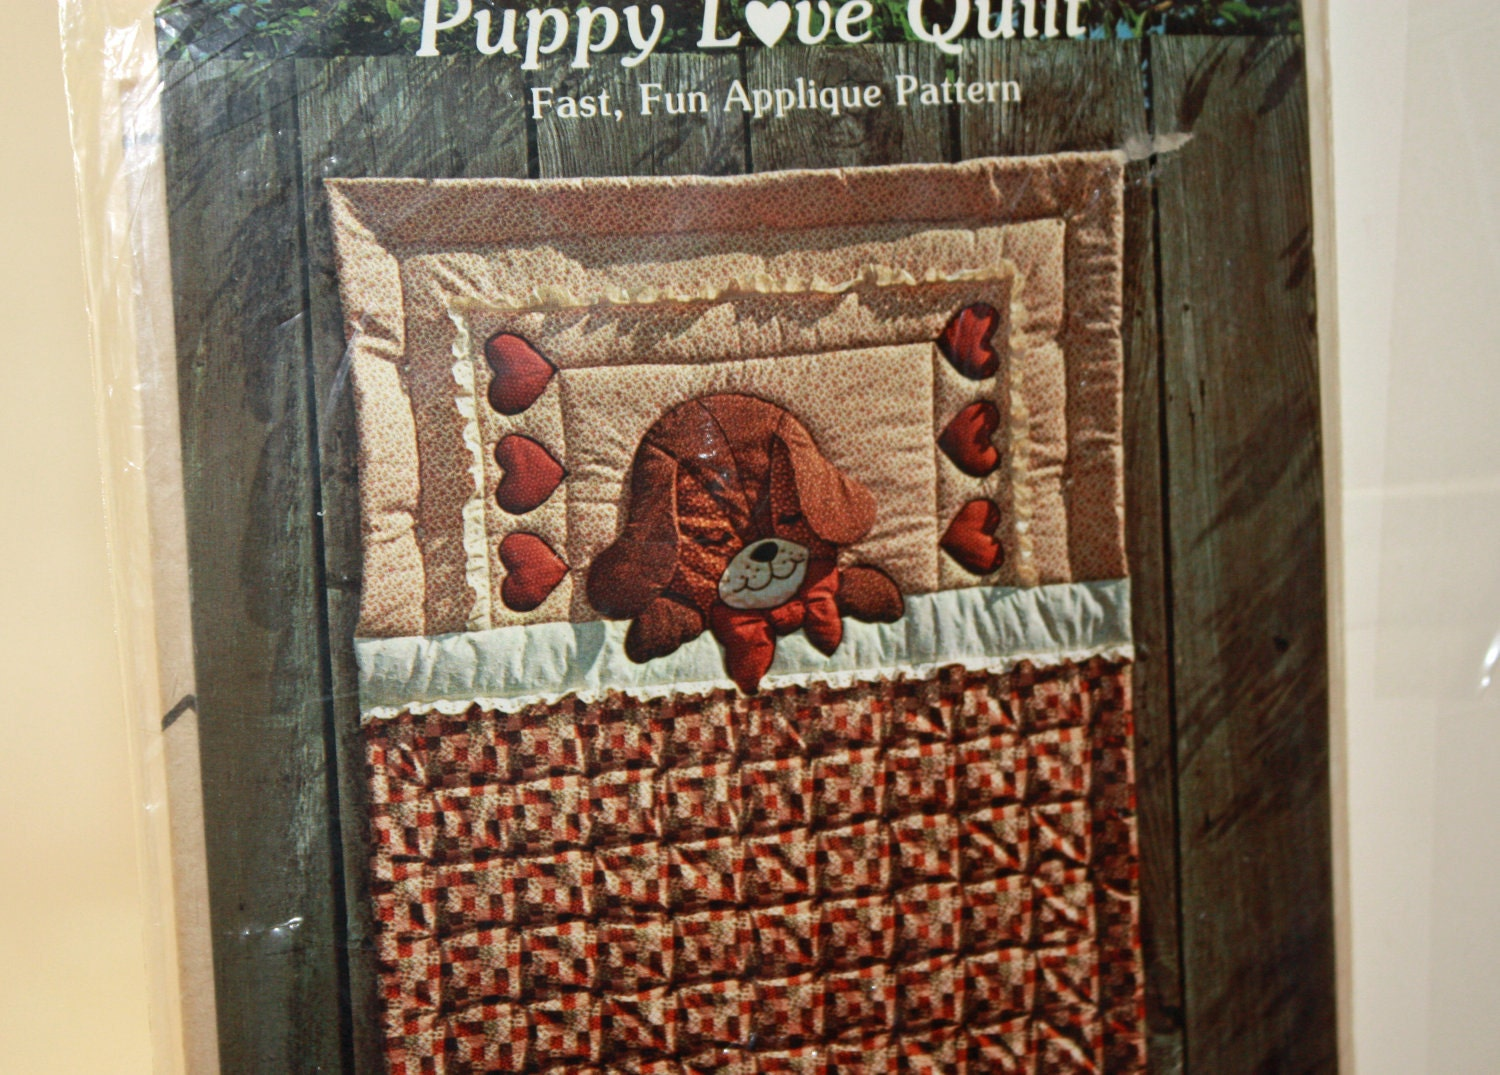 Vintage 1970s Sewing Pattern Puppy Love Crib Size Quilt